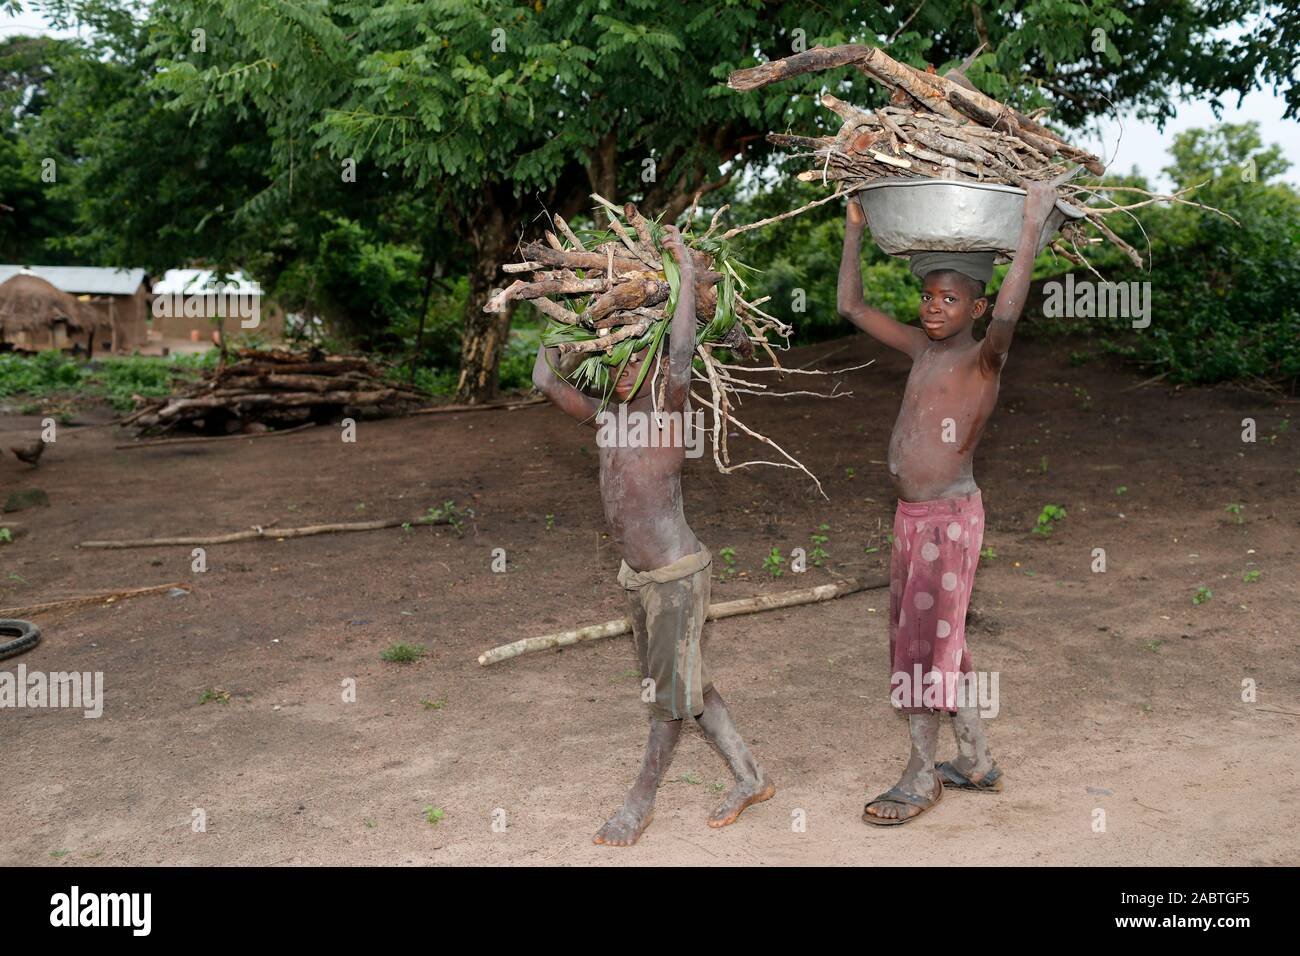 African village. Boys carrying firewood on their heads.  Daily life.  Datcha-Attikpaye. Togo. Stock Photo